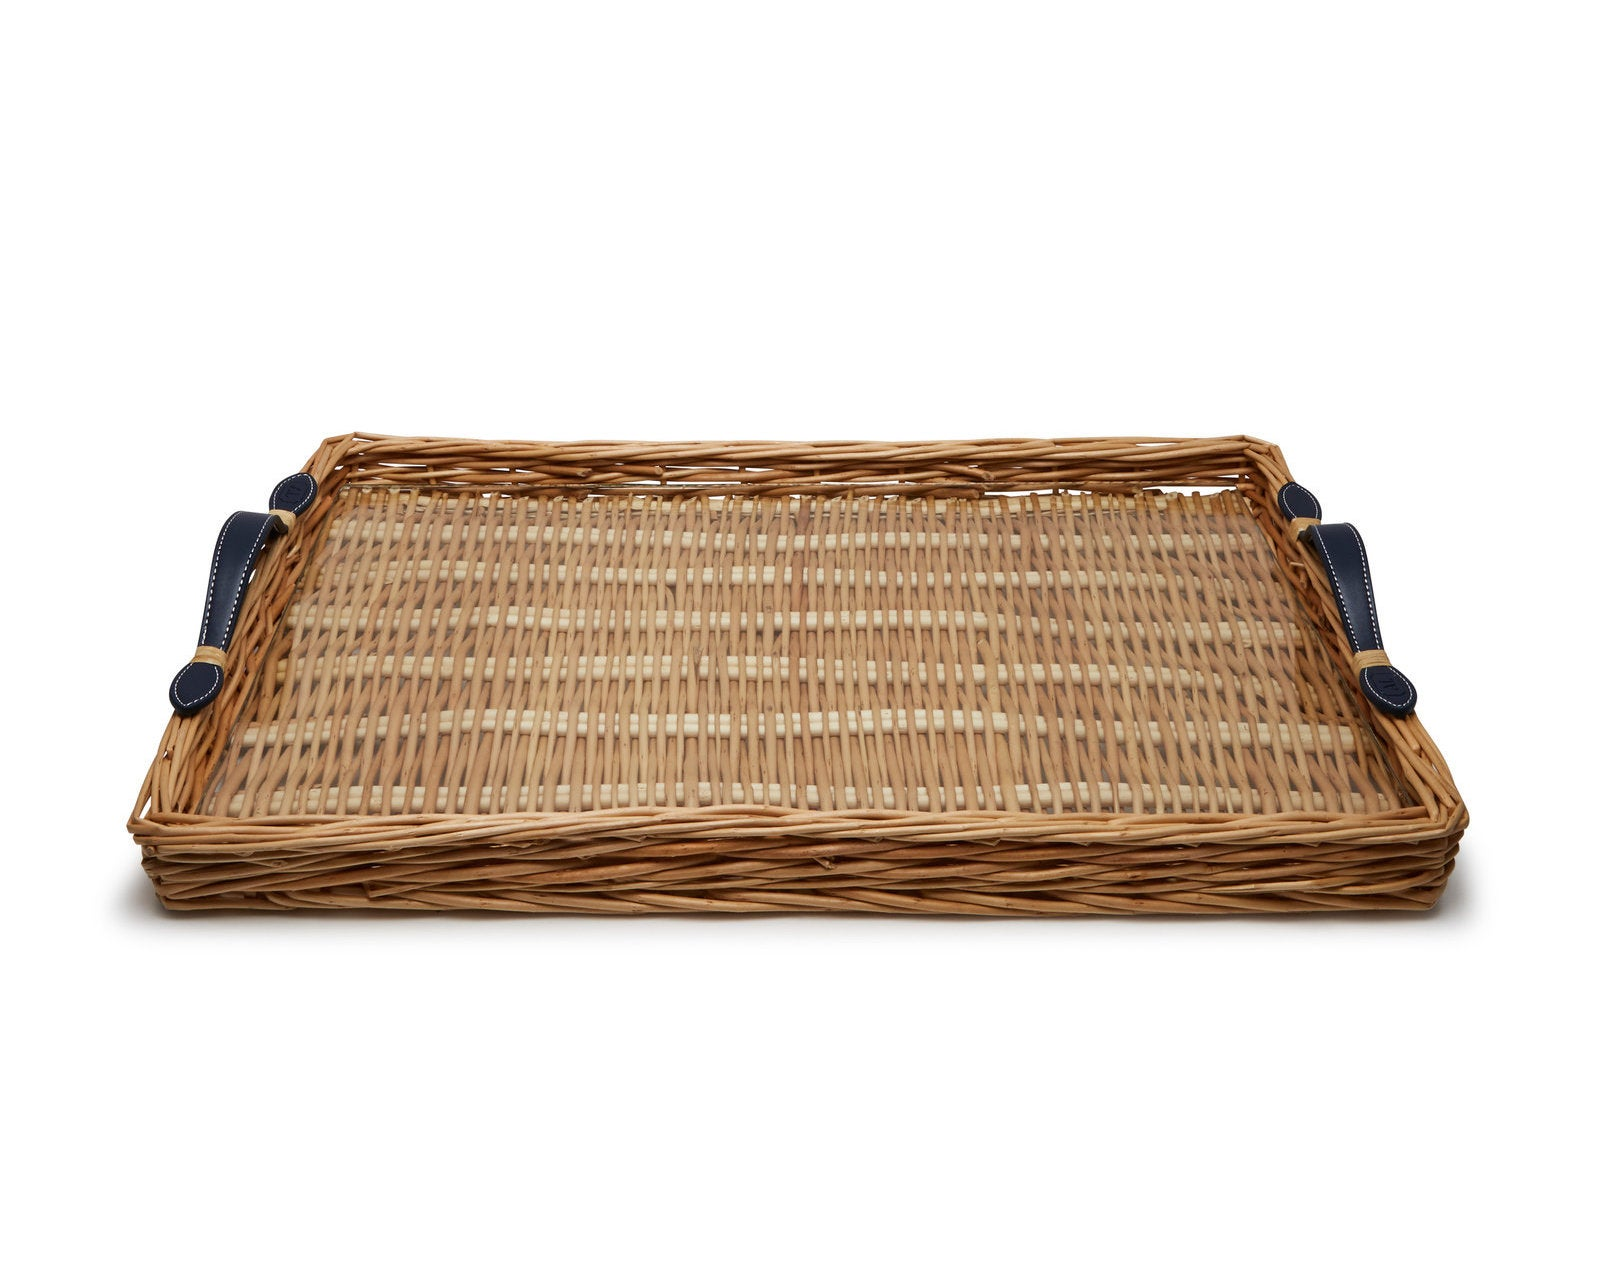 large_amanda-lindroth-navy-island-willow-and-navy-large-leather-tray